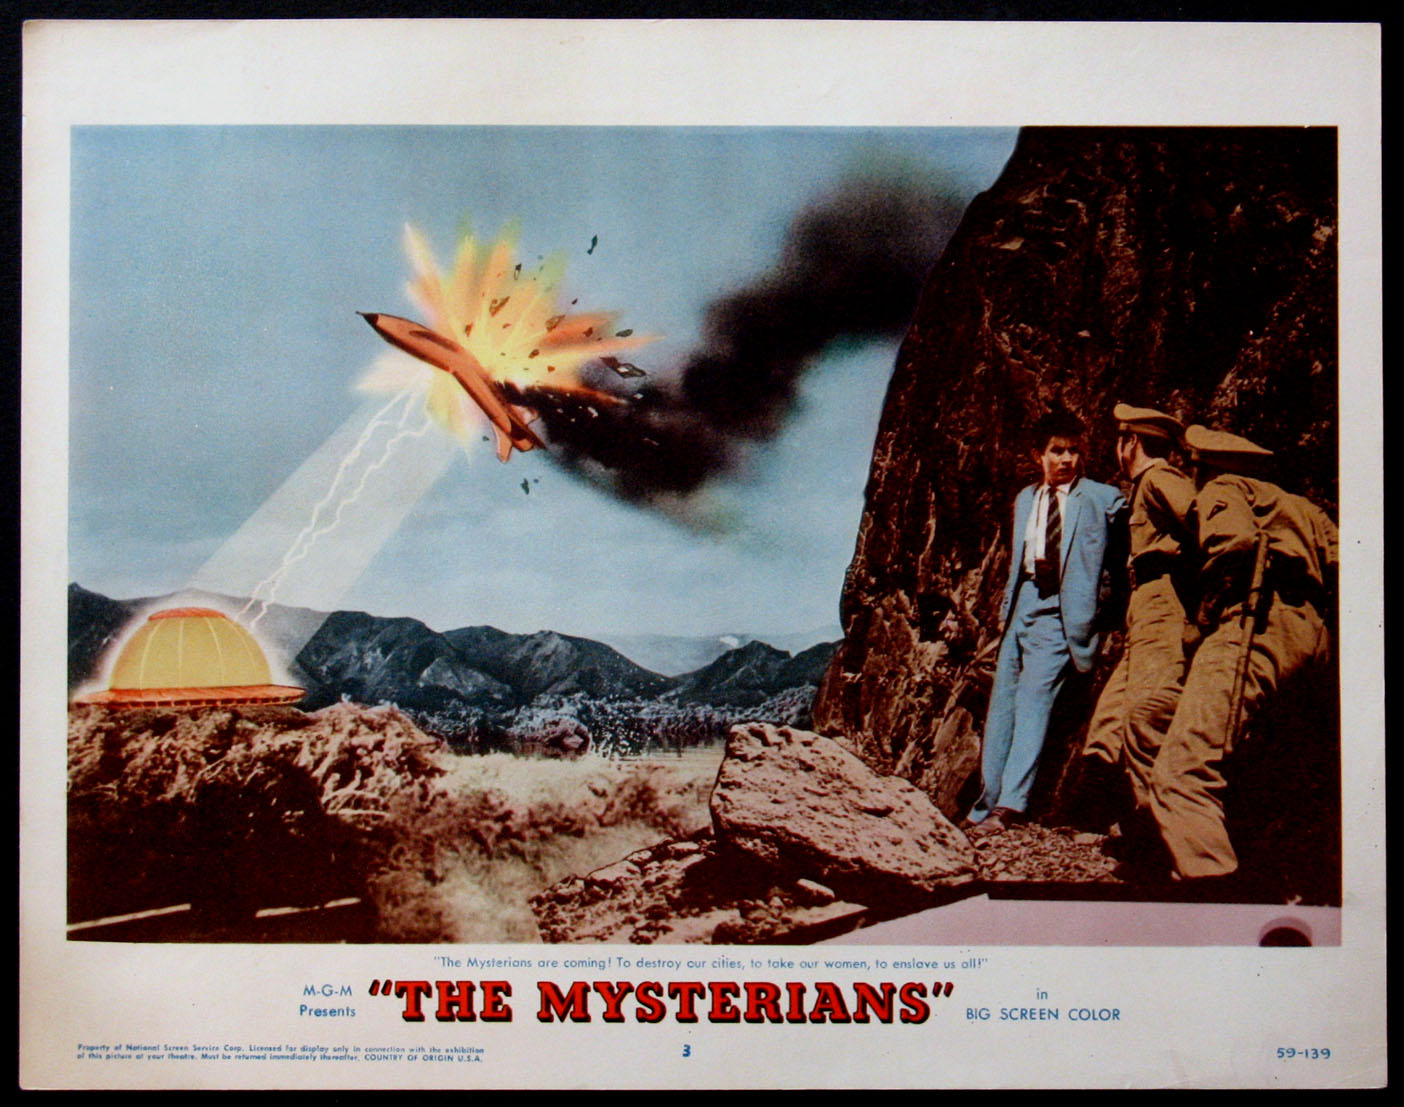 MYSTERIANS, THE @ FilmPosters.com